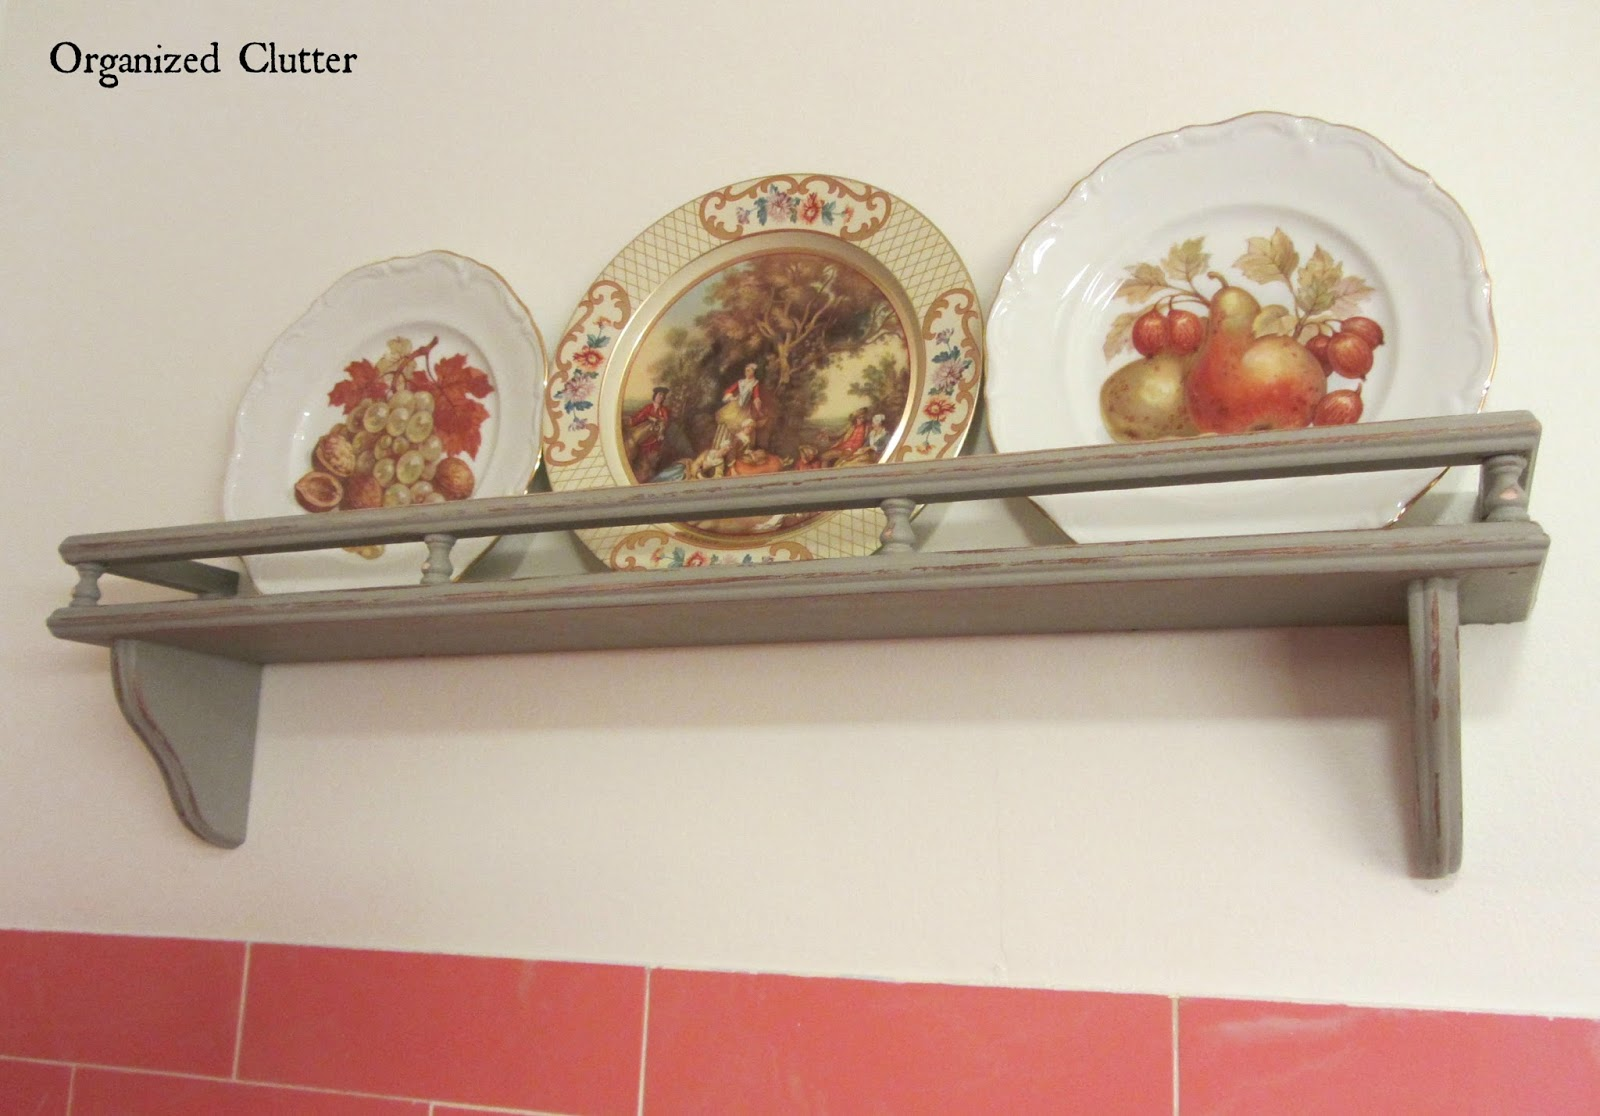 Plates in a Vintage Bathroom www.organizedclutterqueen.blogspot.com